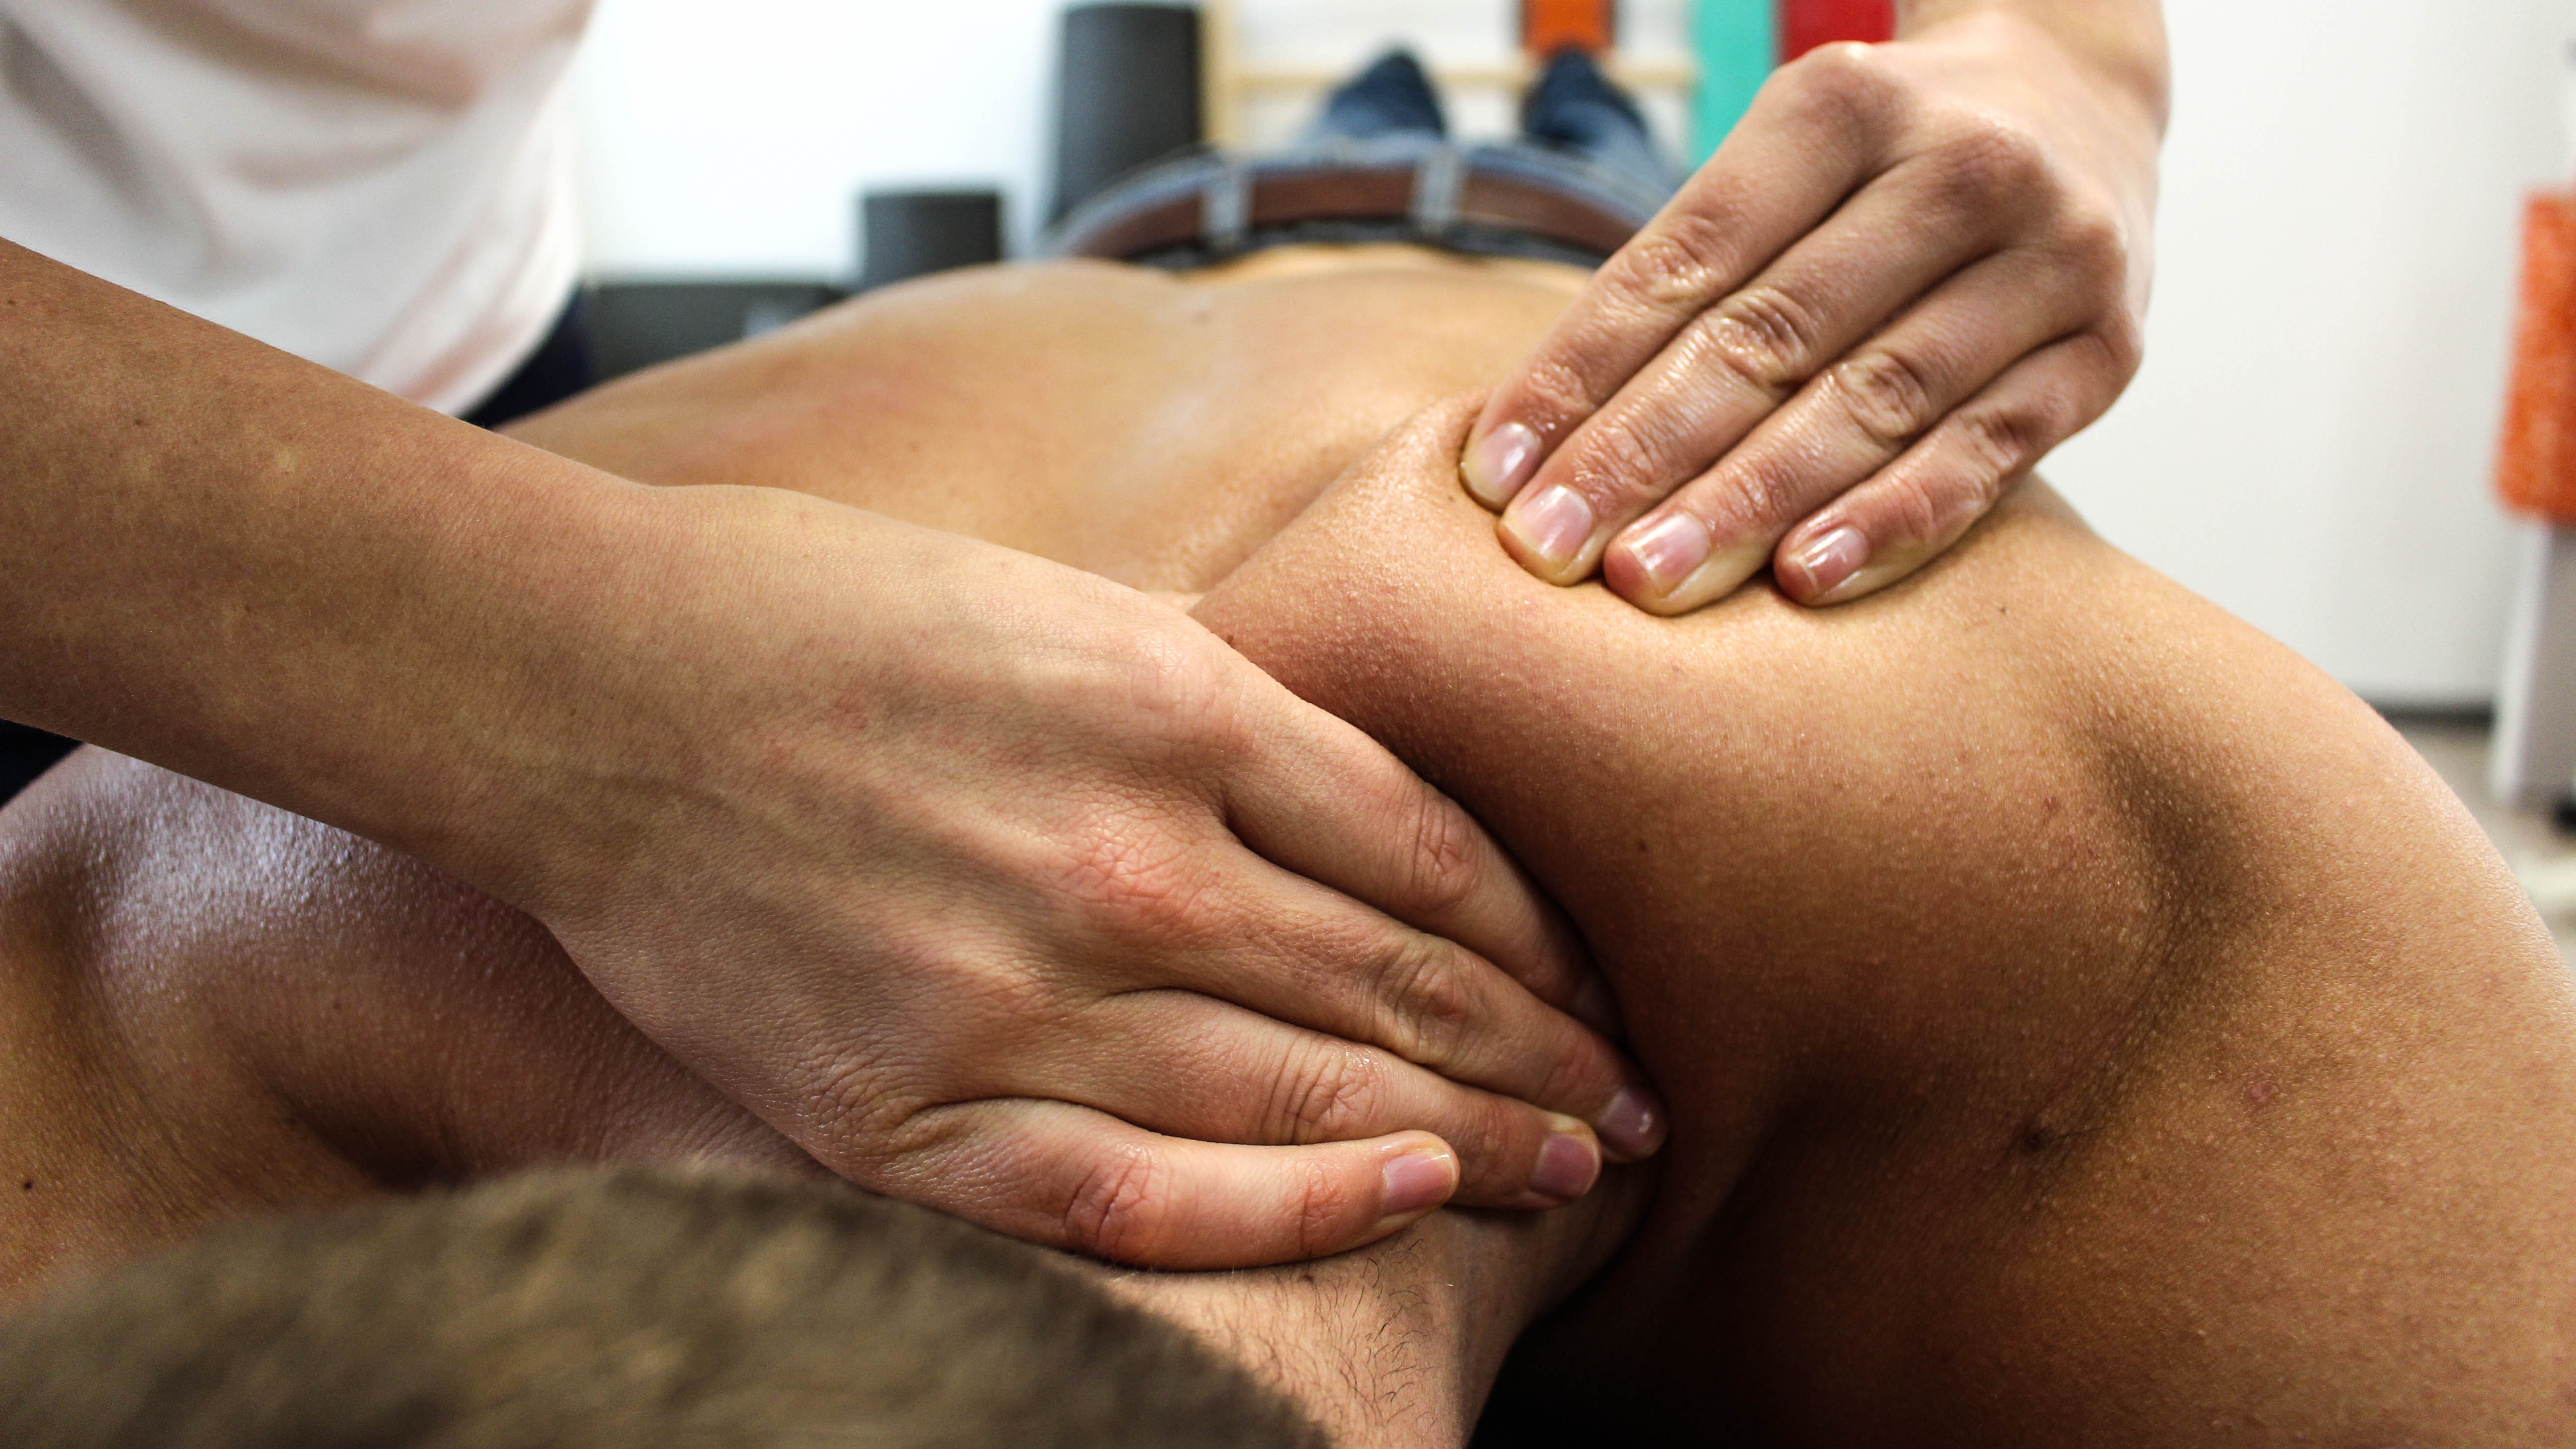 Best Hd Wallpapers For Mobile Screen Free Stock Photo Of Massage Move Physio